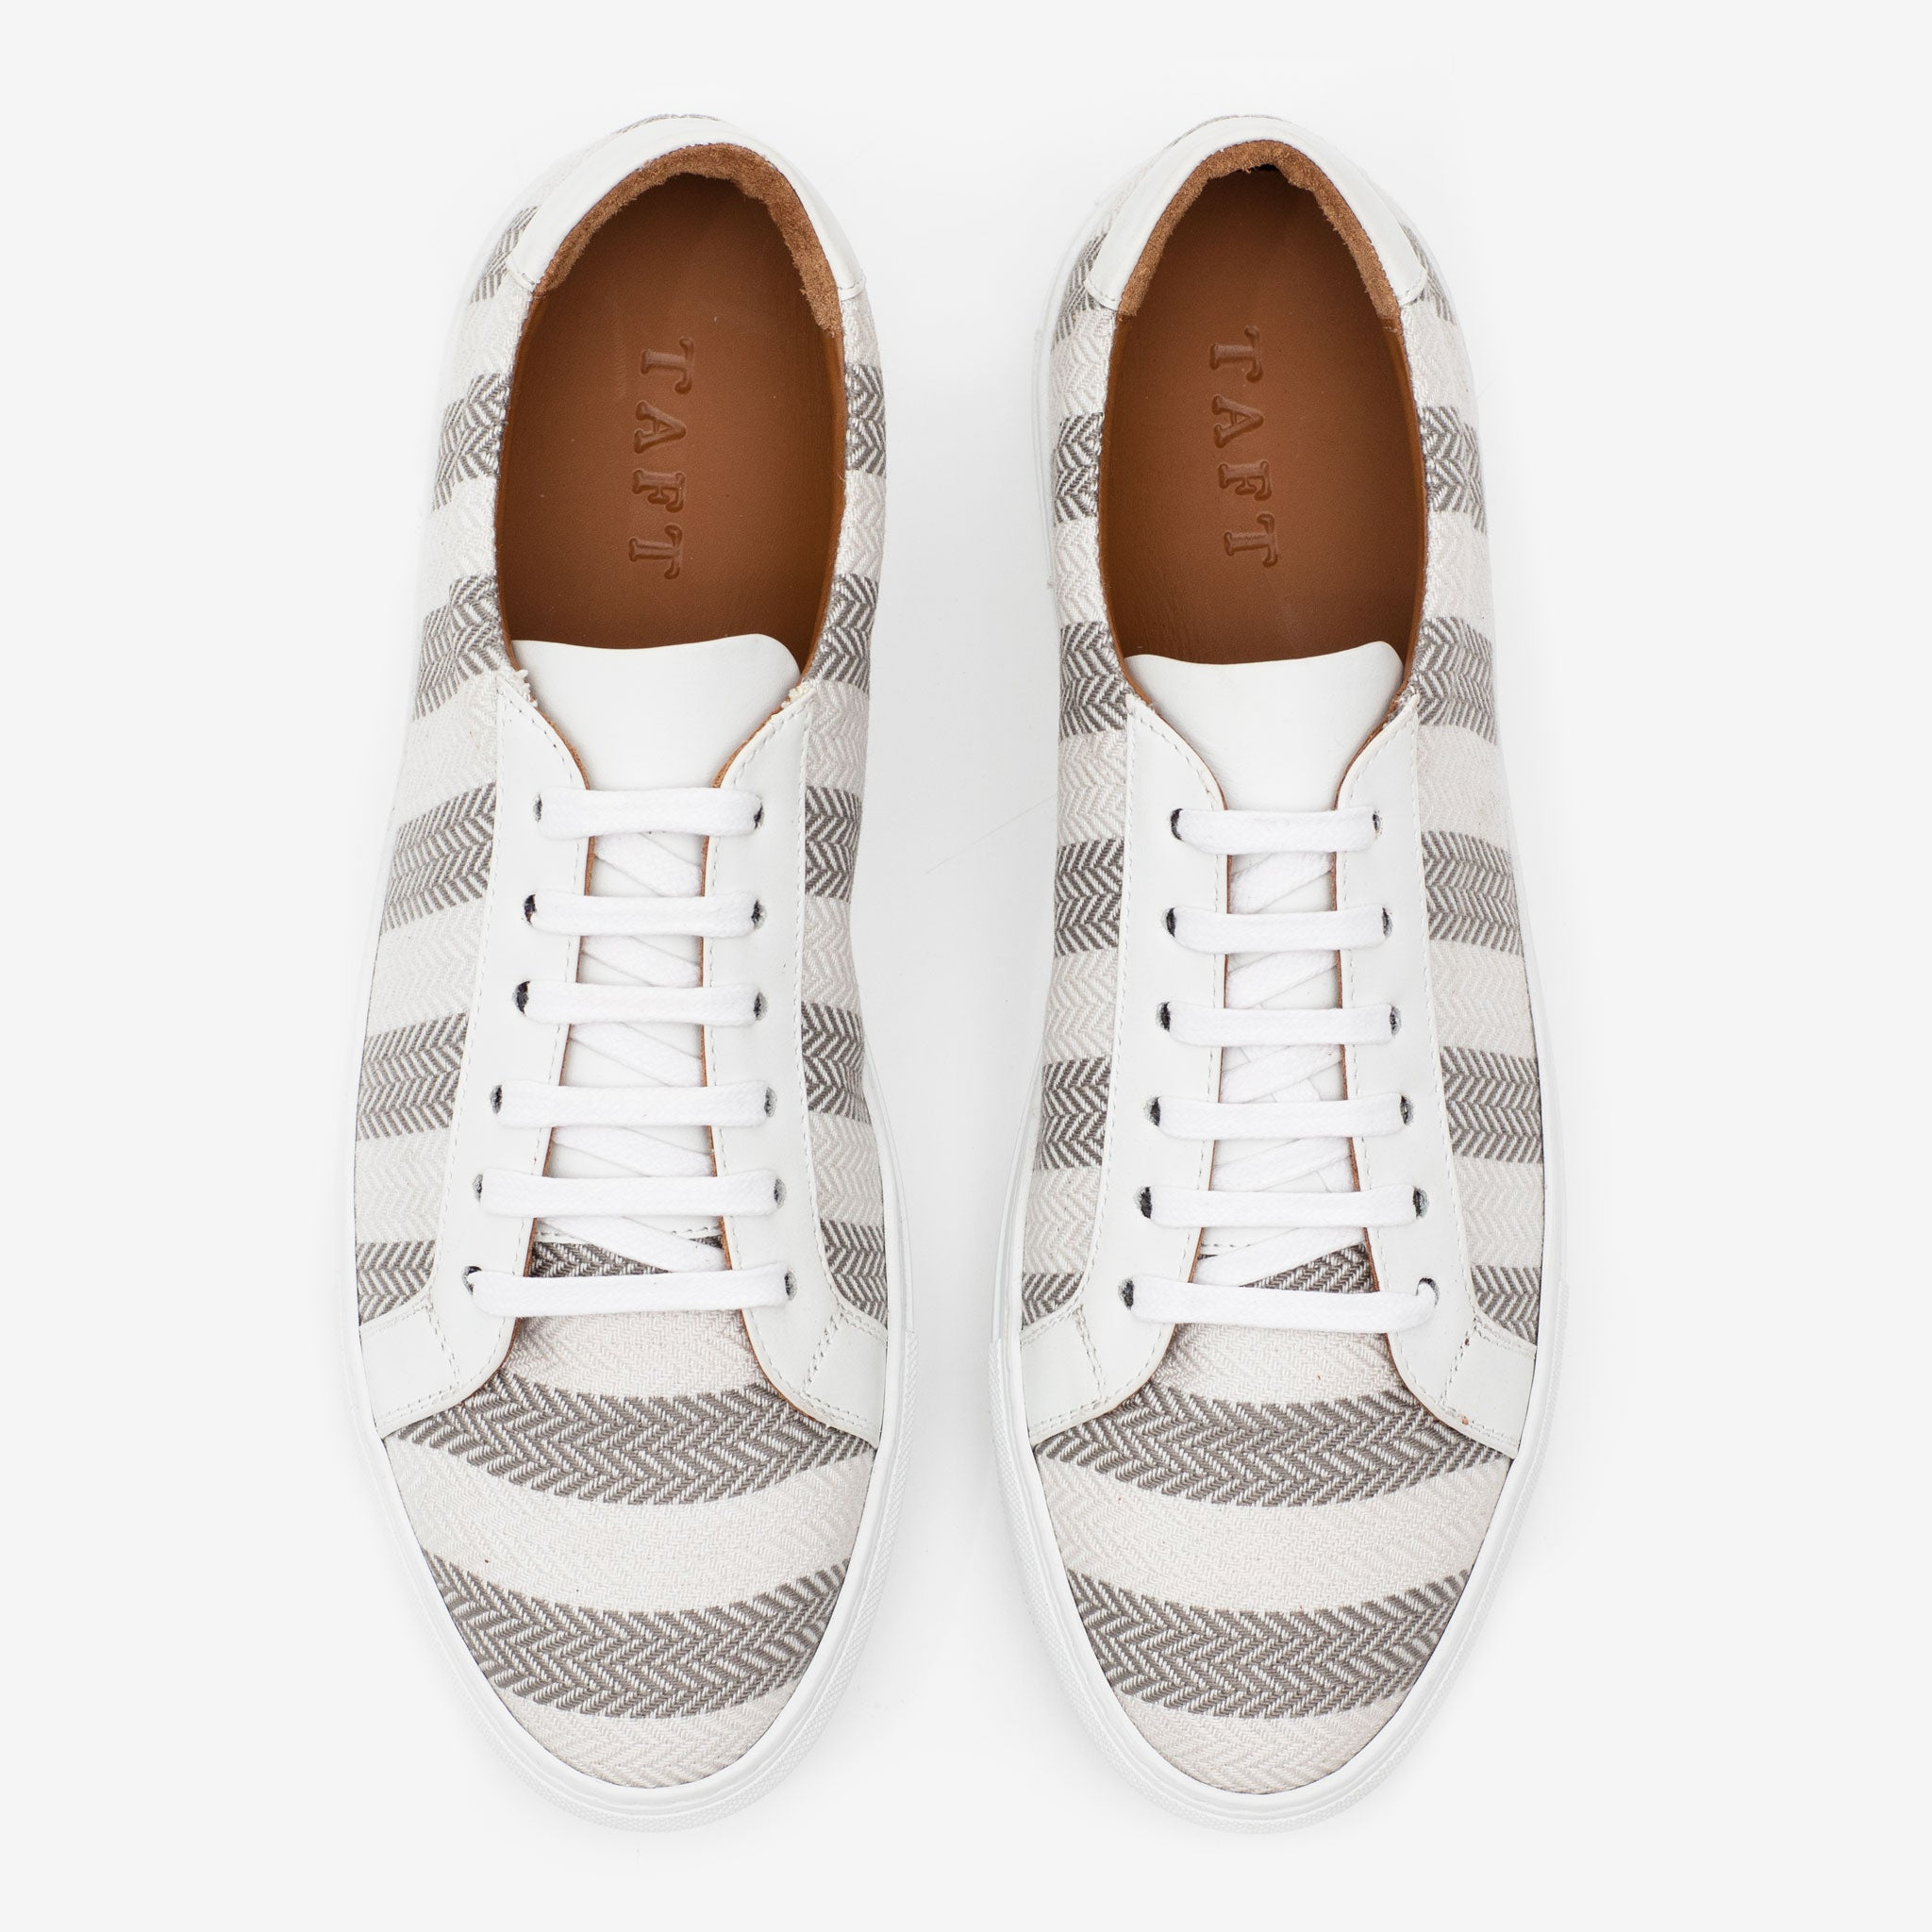 The Sneaker in Grey Stripes Overhead